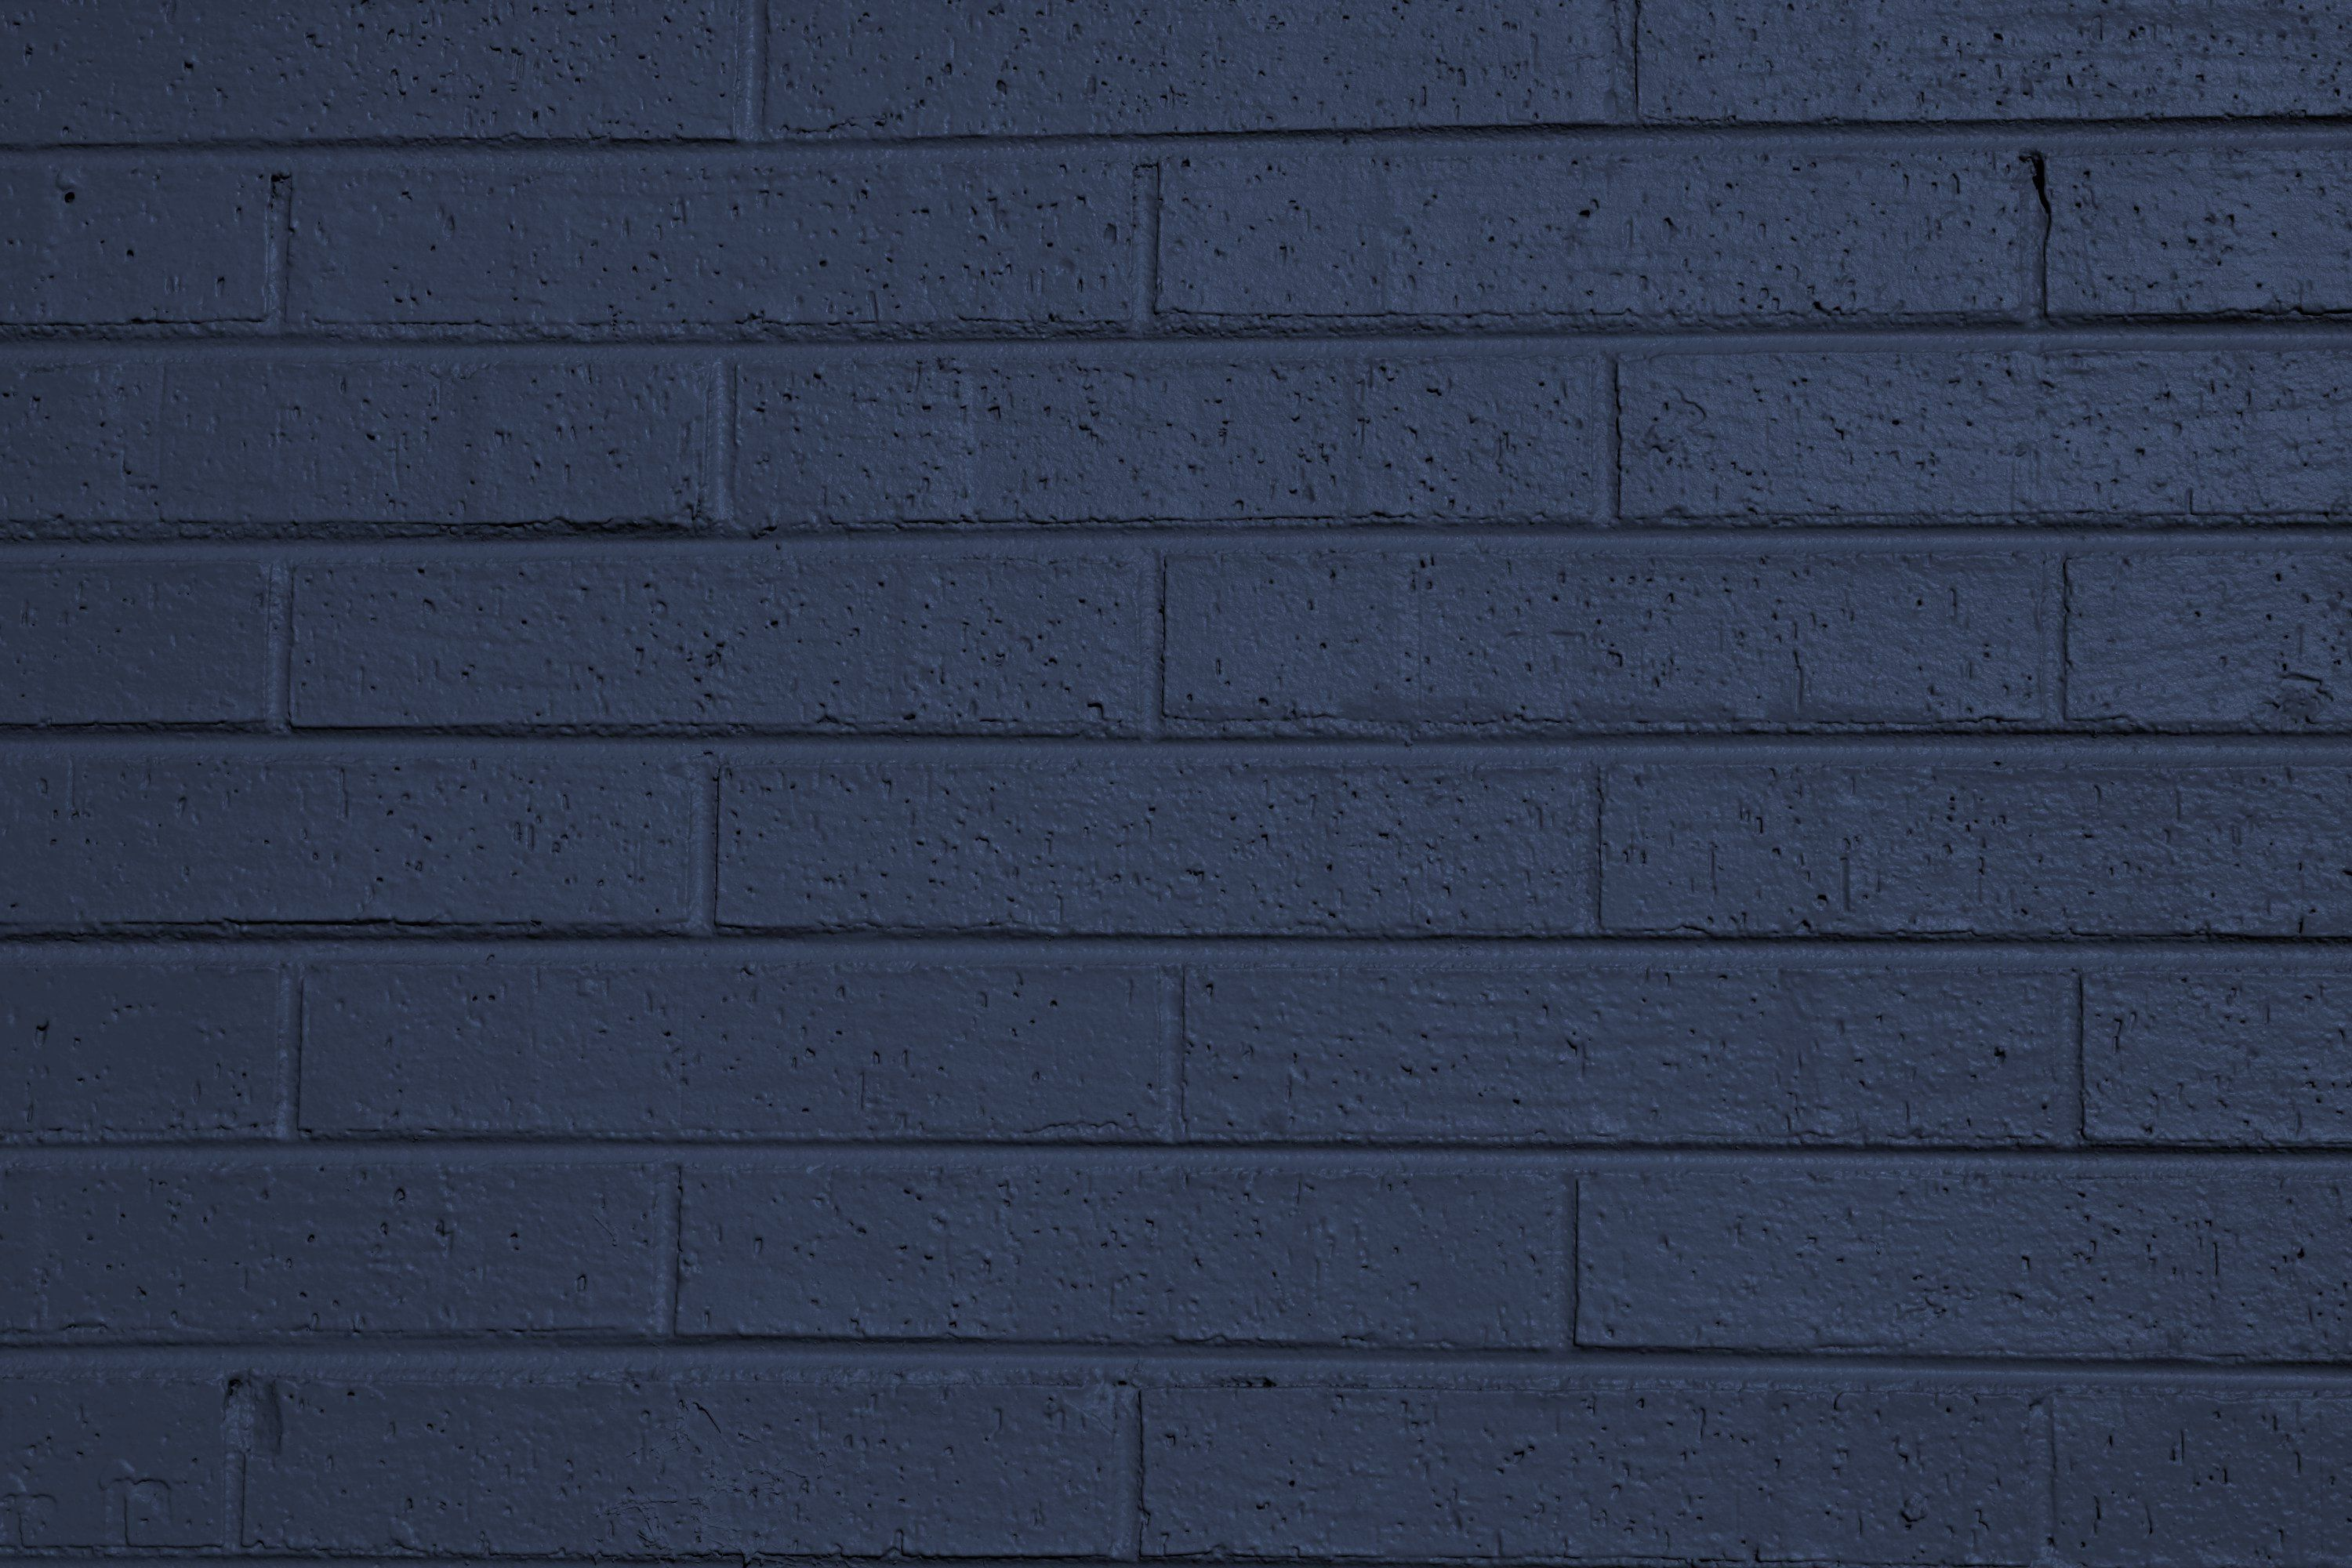 Design Painted Brick Texture gray blue painted brick wall texture free high resolution photo photo